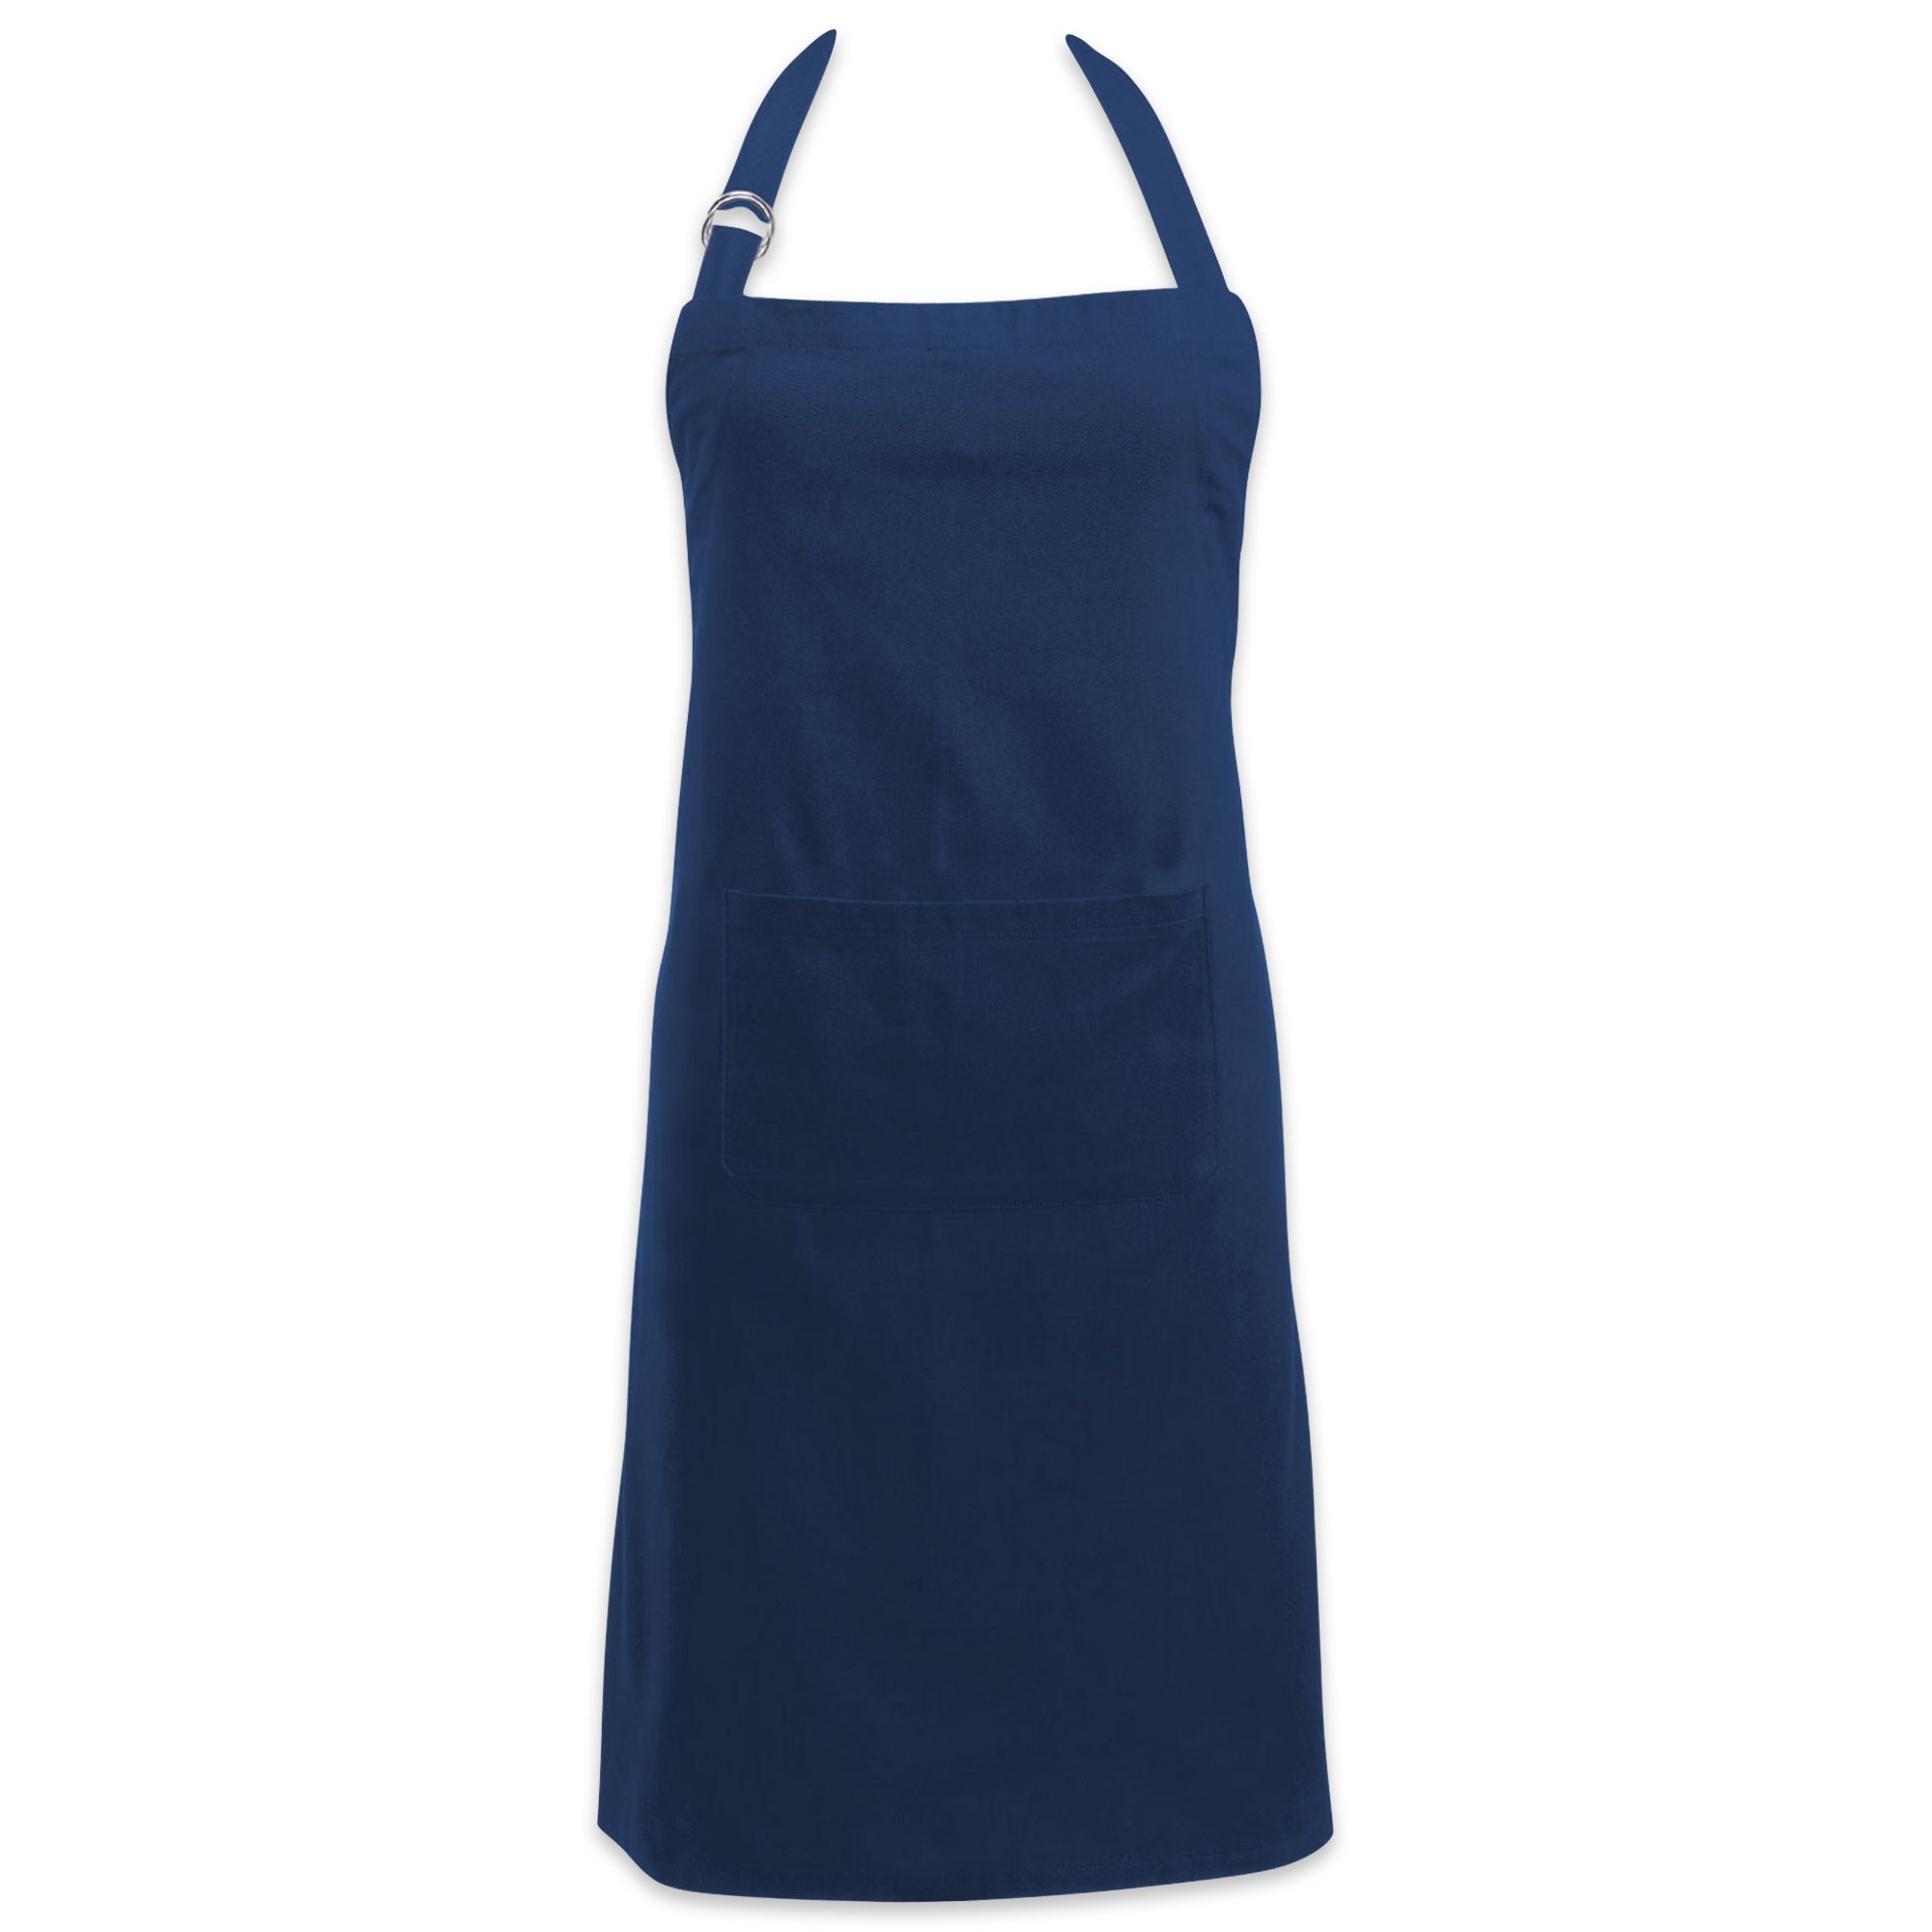 DII Cotton Adjustable Kitchen Chef Apron with Pocket and Extra Long Ties, 32 x 28'', Commercial Men & Women Bib Apron for Cooking, Baking, Crafting, Gardening, BBQ-Nautical Blue